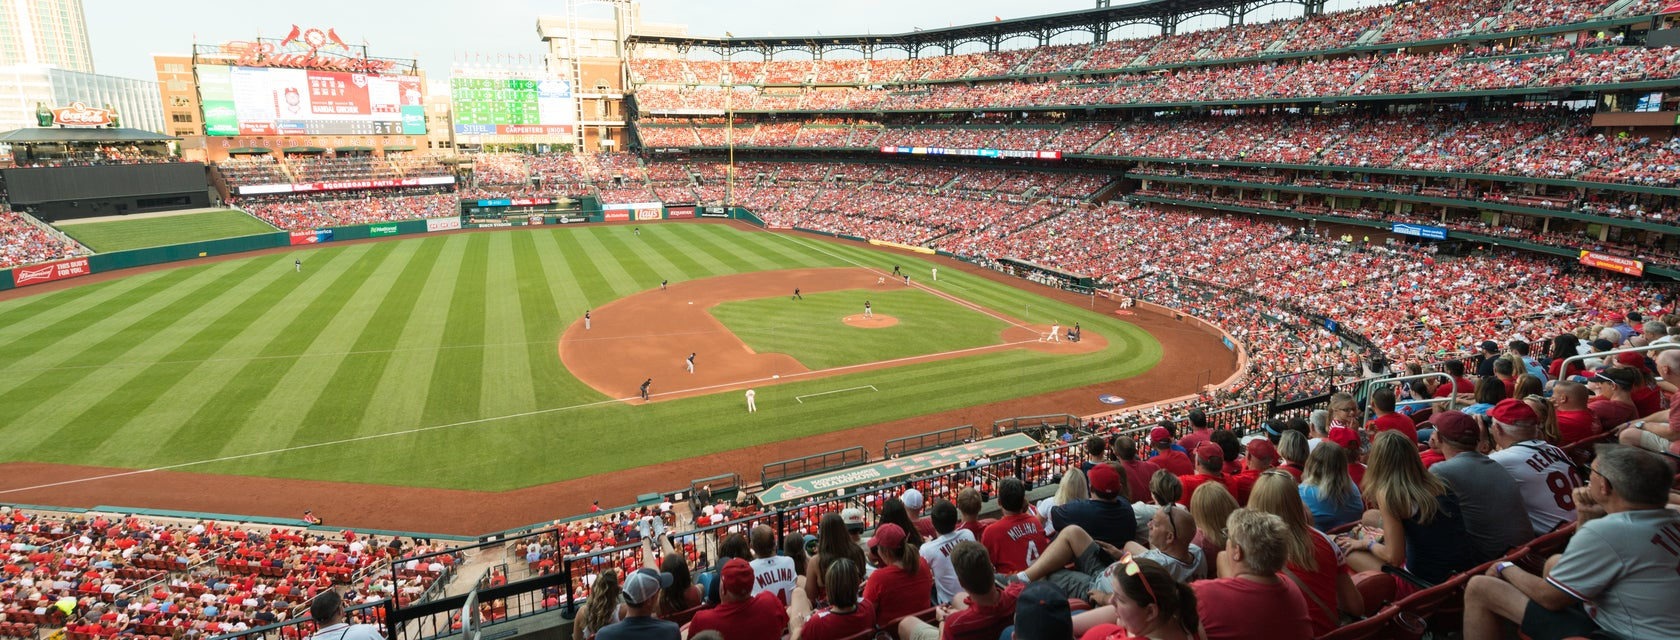 Seat view from National Rental Club